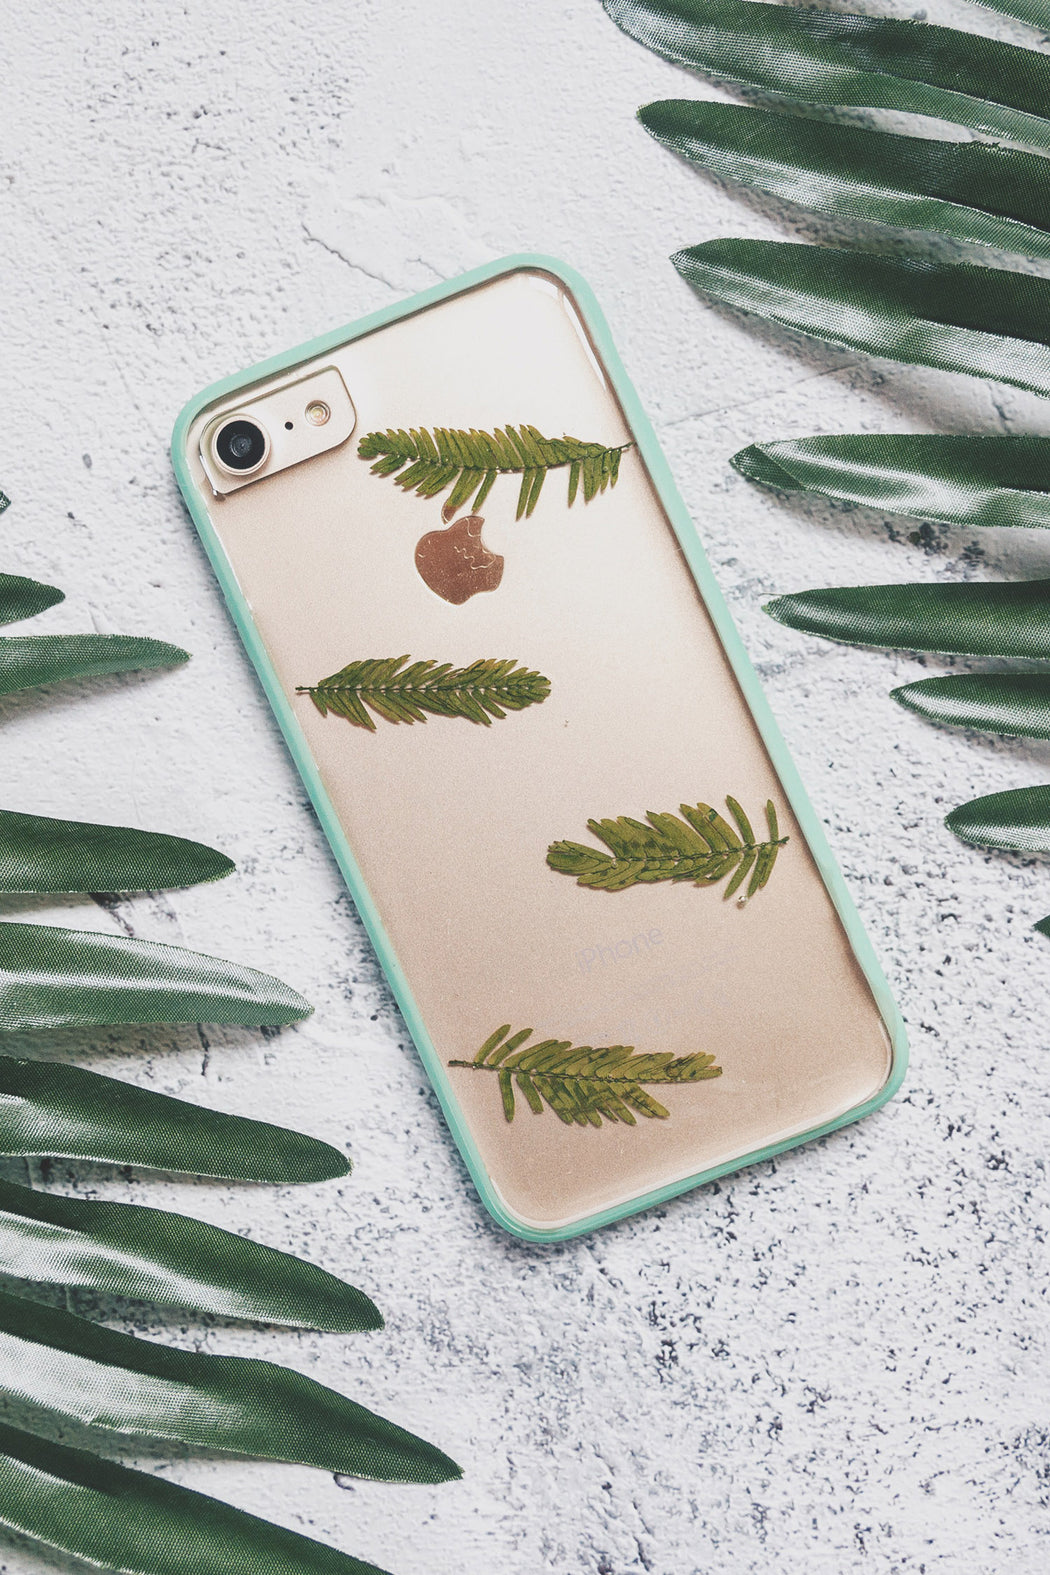 pressed flower green fern leaf cute protective anti drop floral iphone 7 8 bumper case lime floral neverland floraly